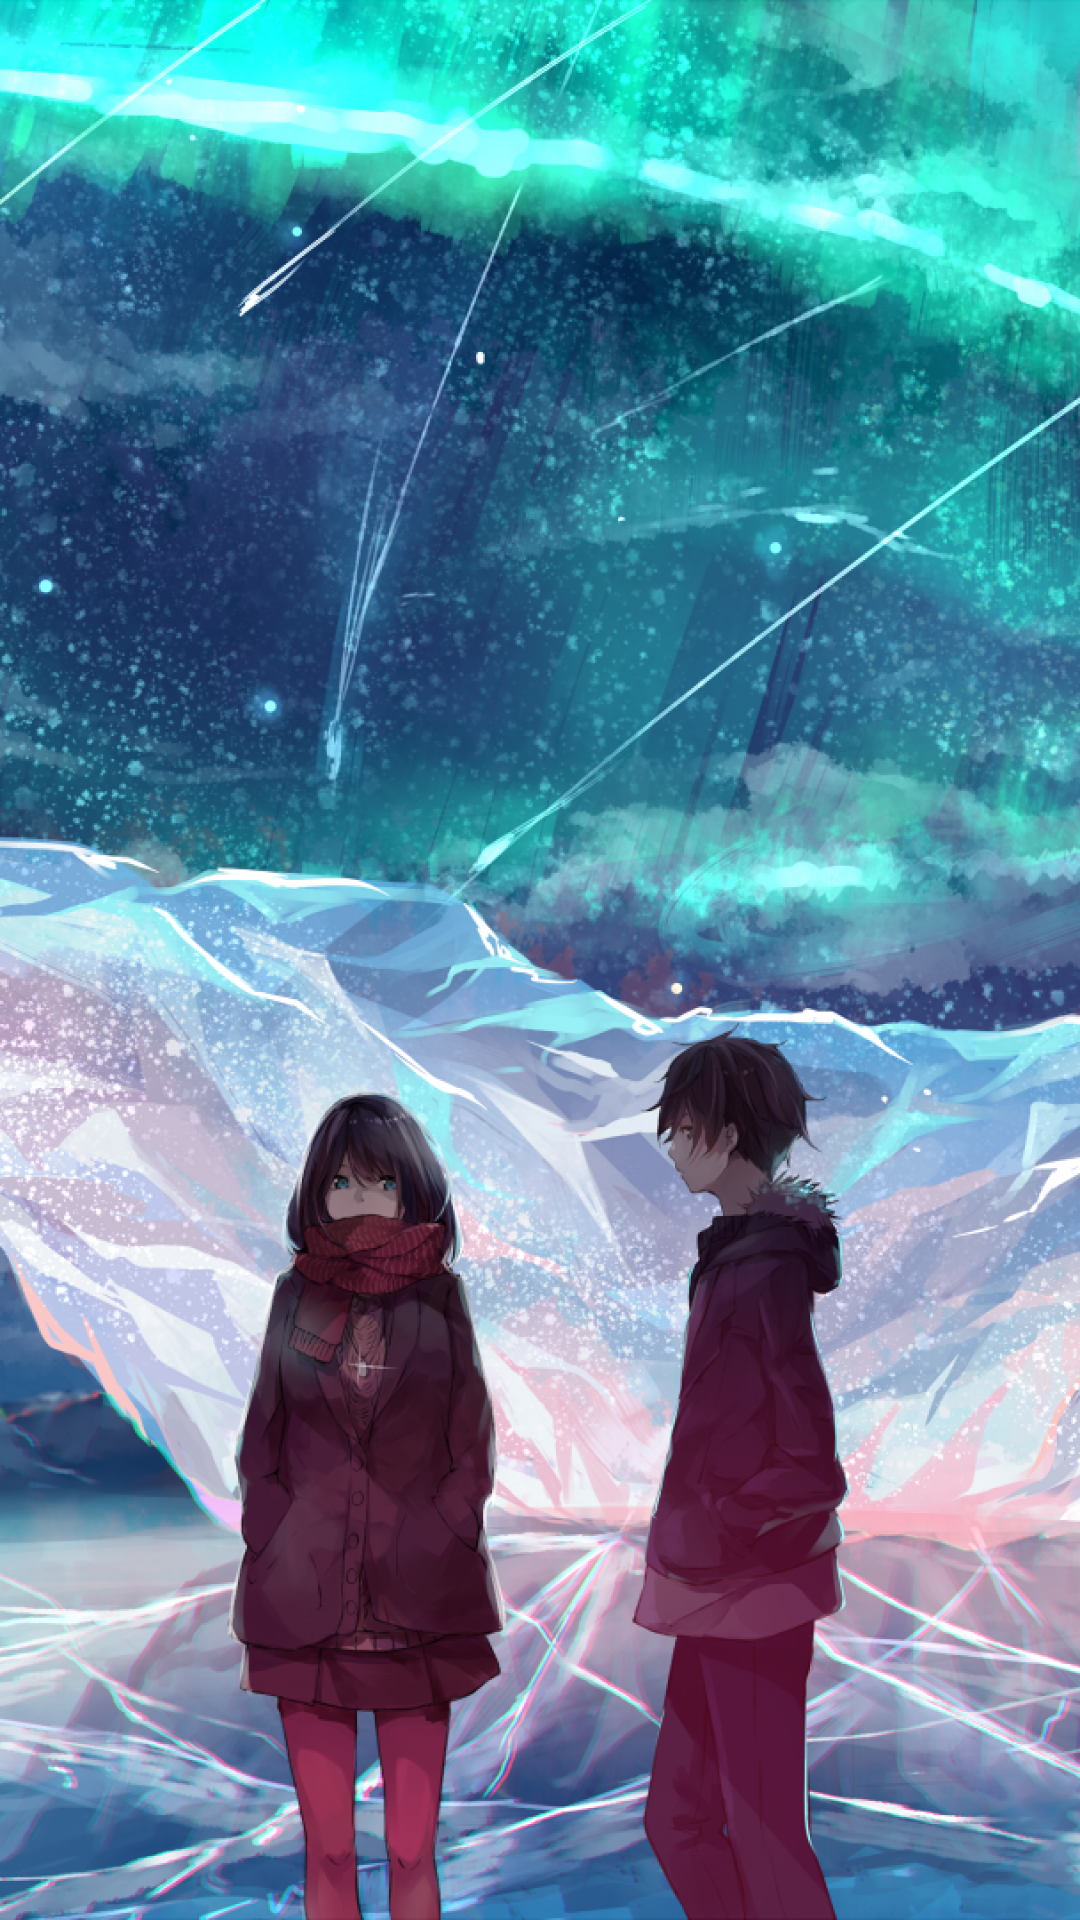 Anime Couple, Ice Field, Scarf, Anime Girl, Boy - Anime Couple Wallpaper Iphone , HD Wallpaper & Backgrounds